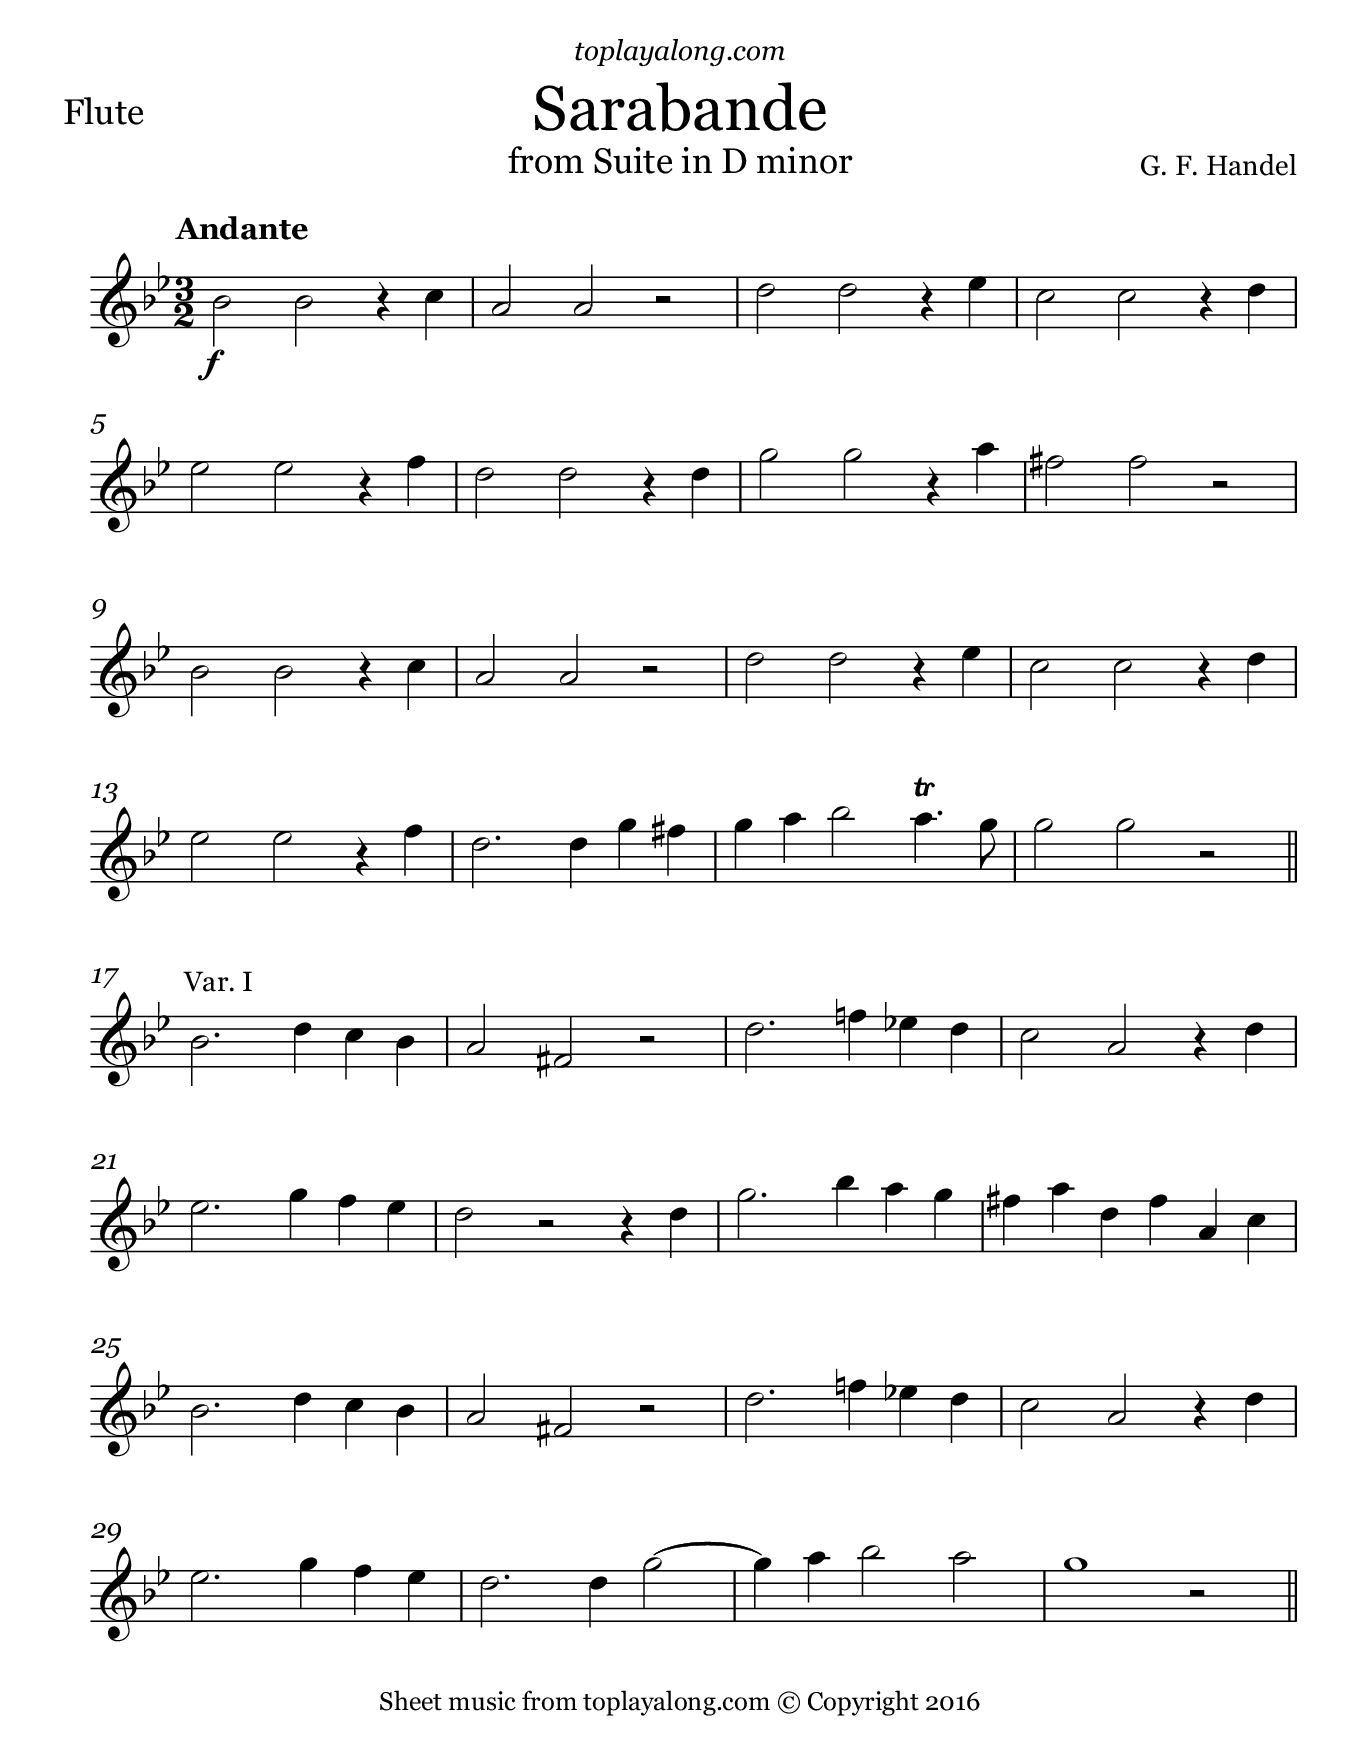 Sarabande from Suite in D minor by Handel. Sheet music for Flute, page 1.